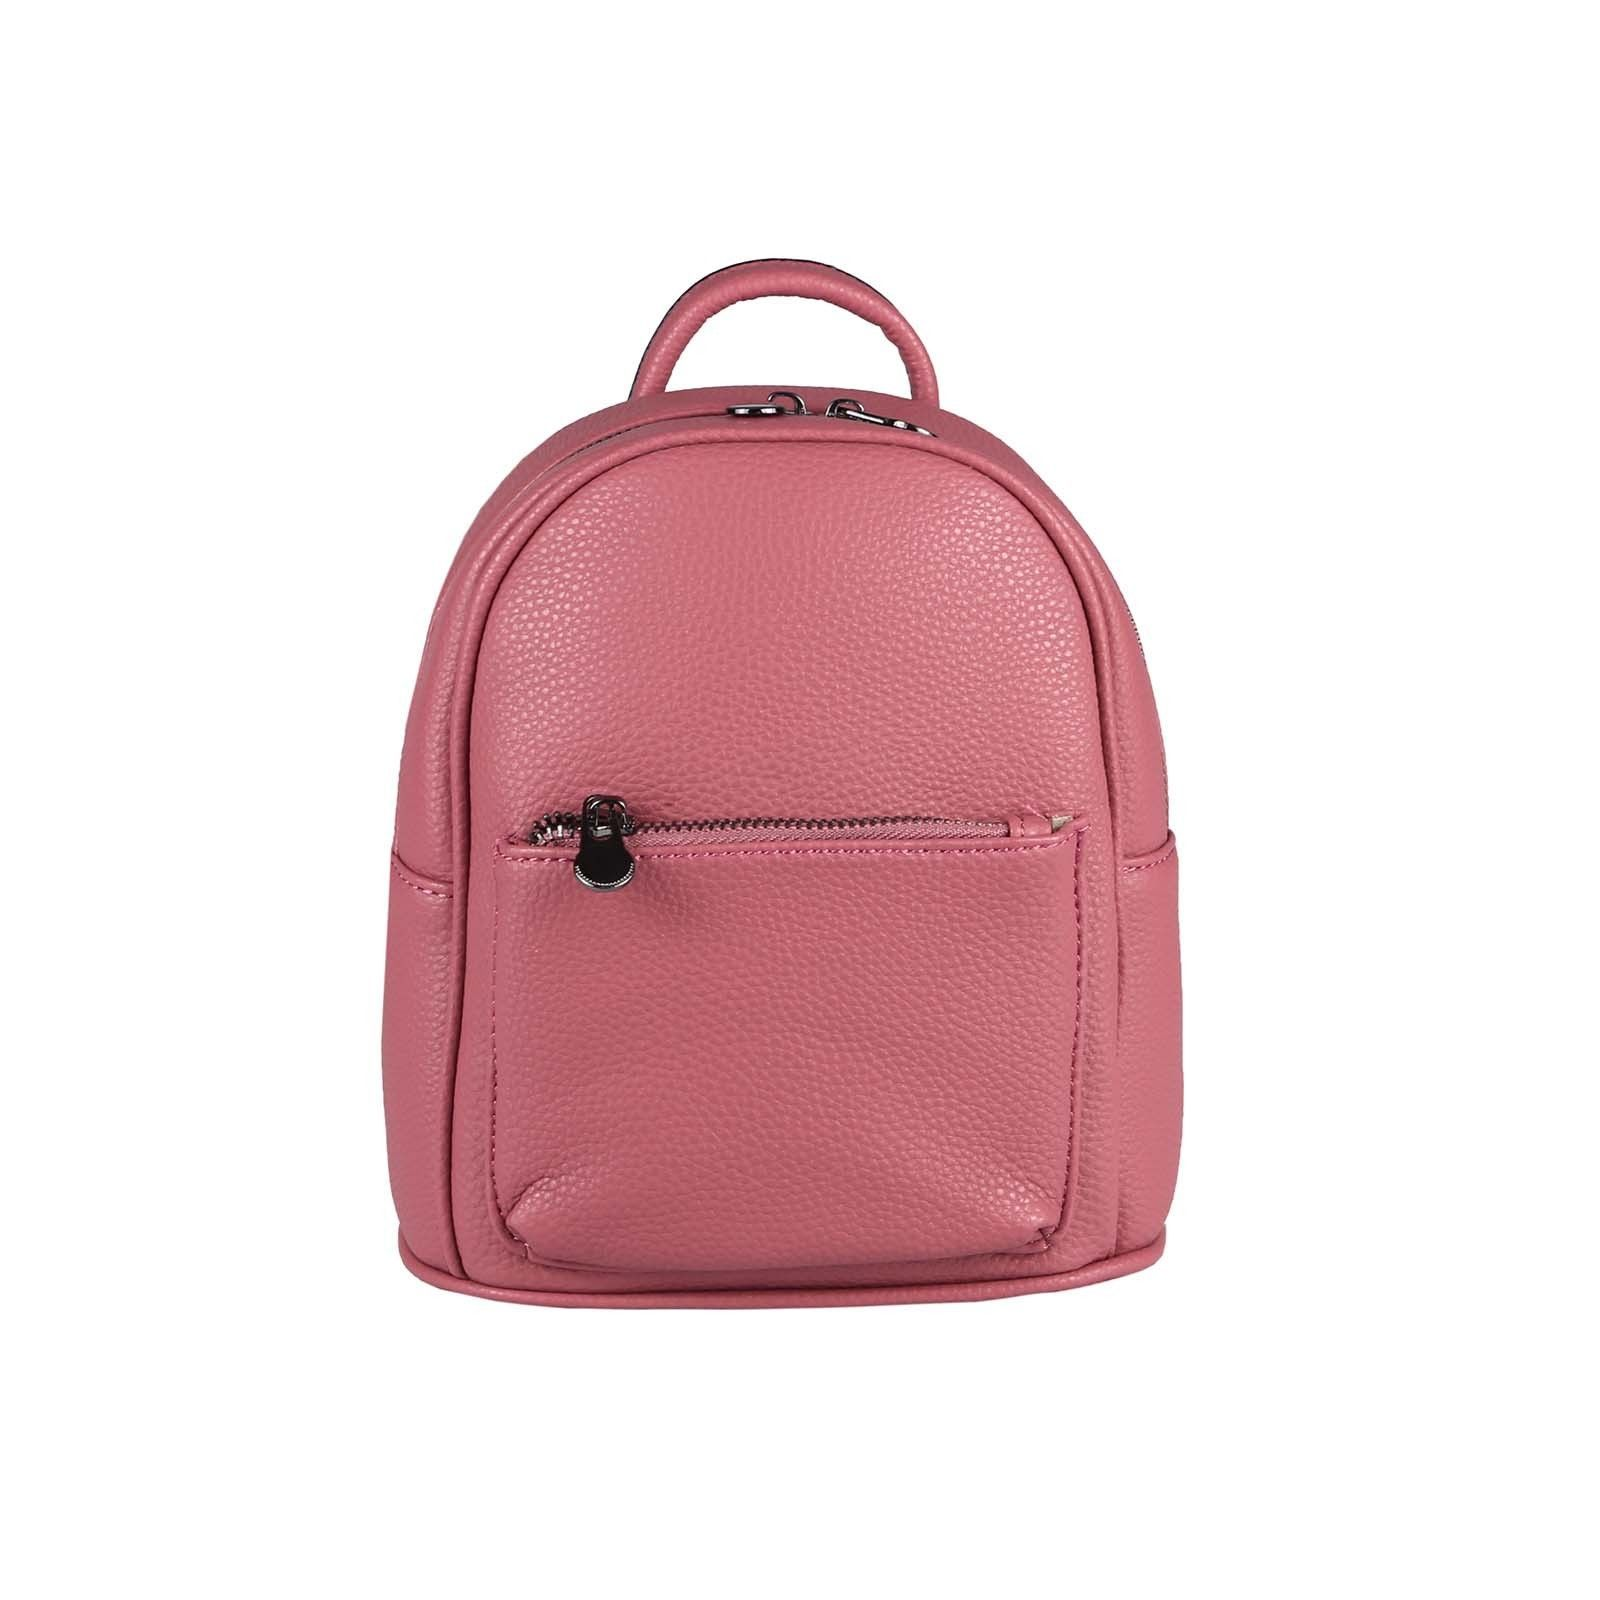 Marked Your Friends So They Can See It Ladies Mini Backpack Bag Backpack Daypack City Backpack Shoulder Bag Handbag 2 Schultertasche Rucksack Tasche Taschen